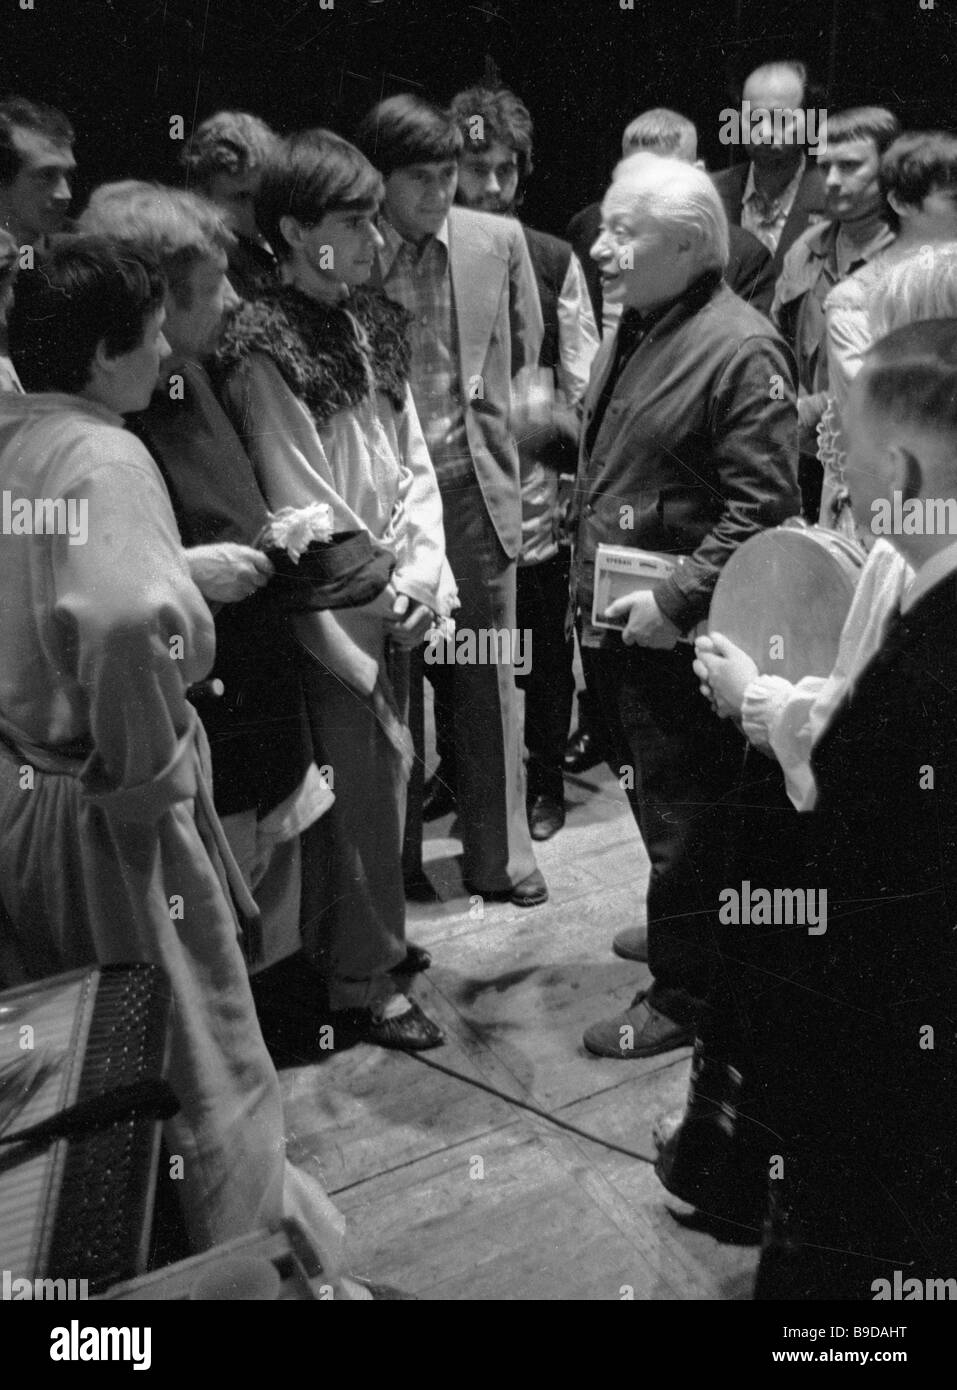 Sergei Obraztsov center People s Artist of the U S S R talking to performers of the Kharkov Puppet Theater - Stock Image